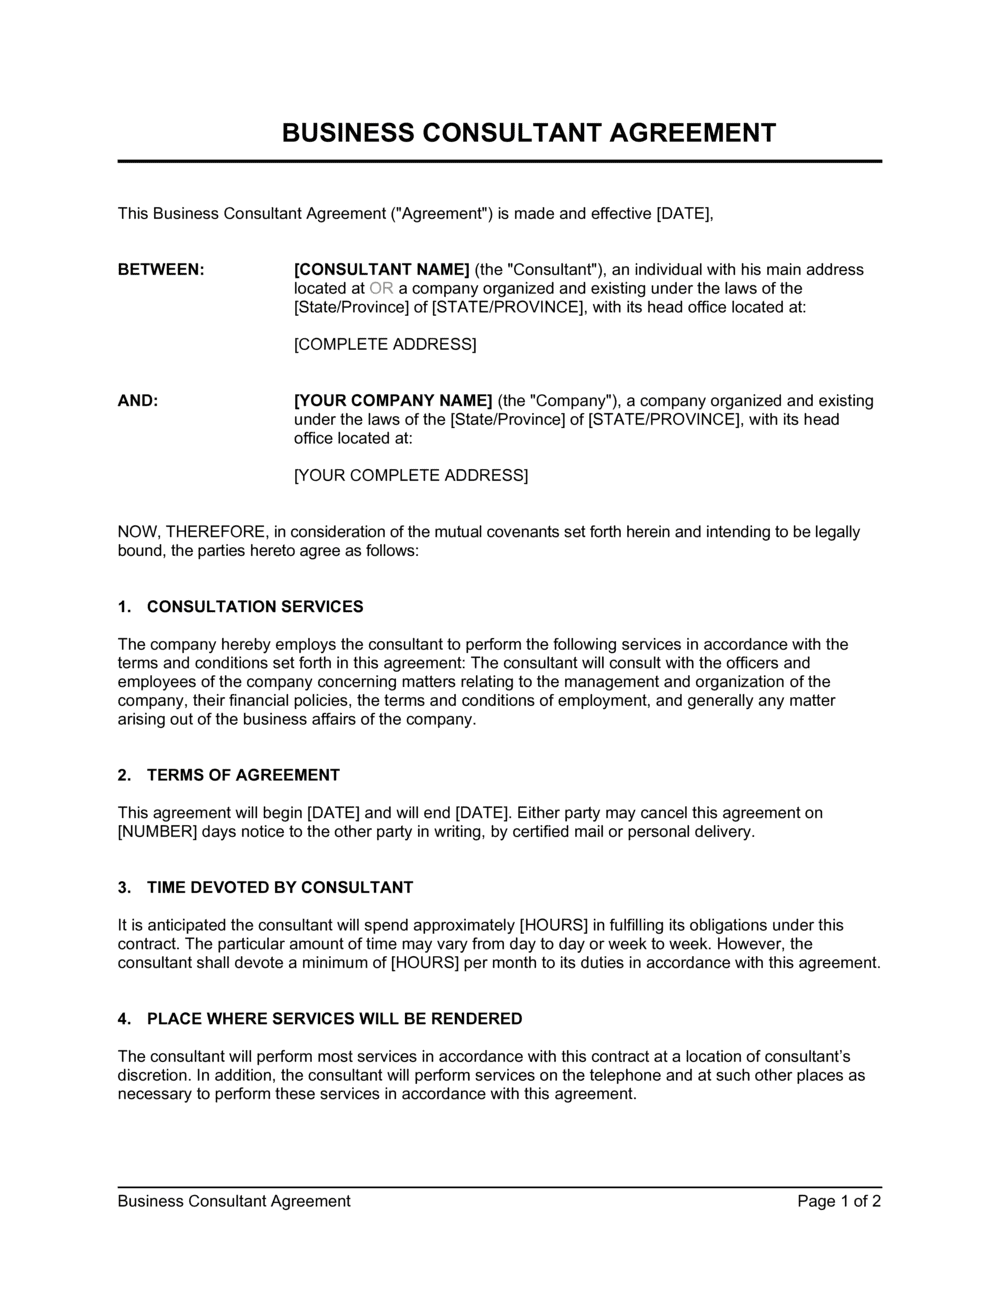 Business-in-a-Box's Consulting Contract Template